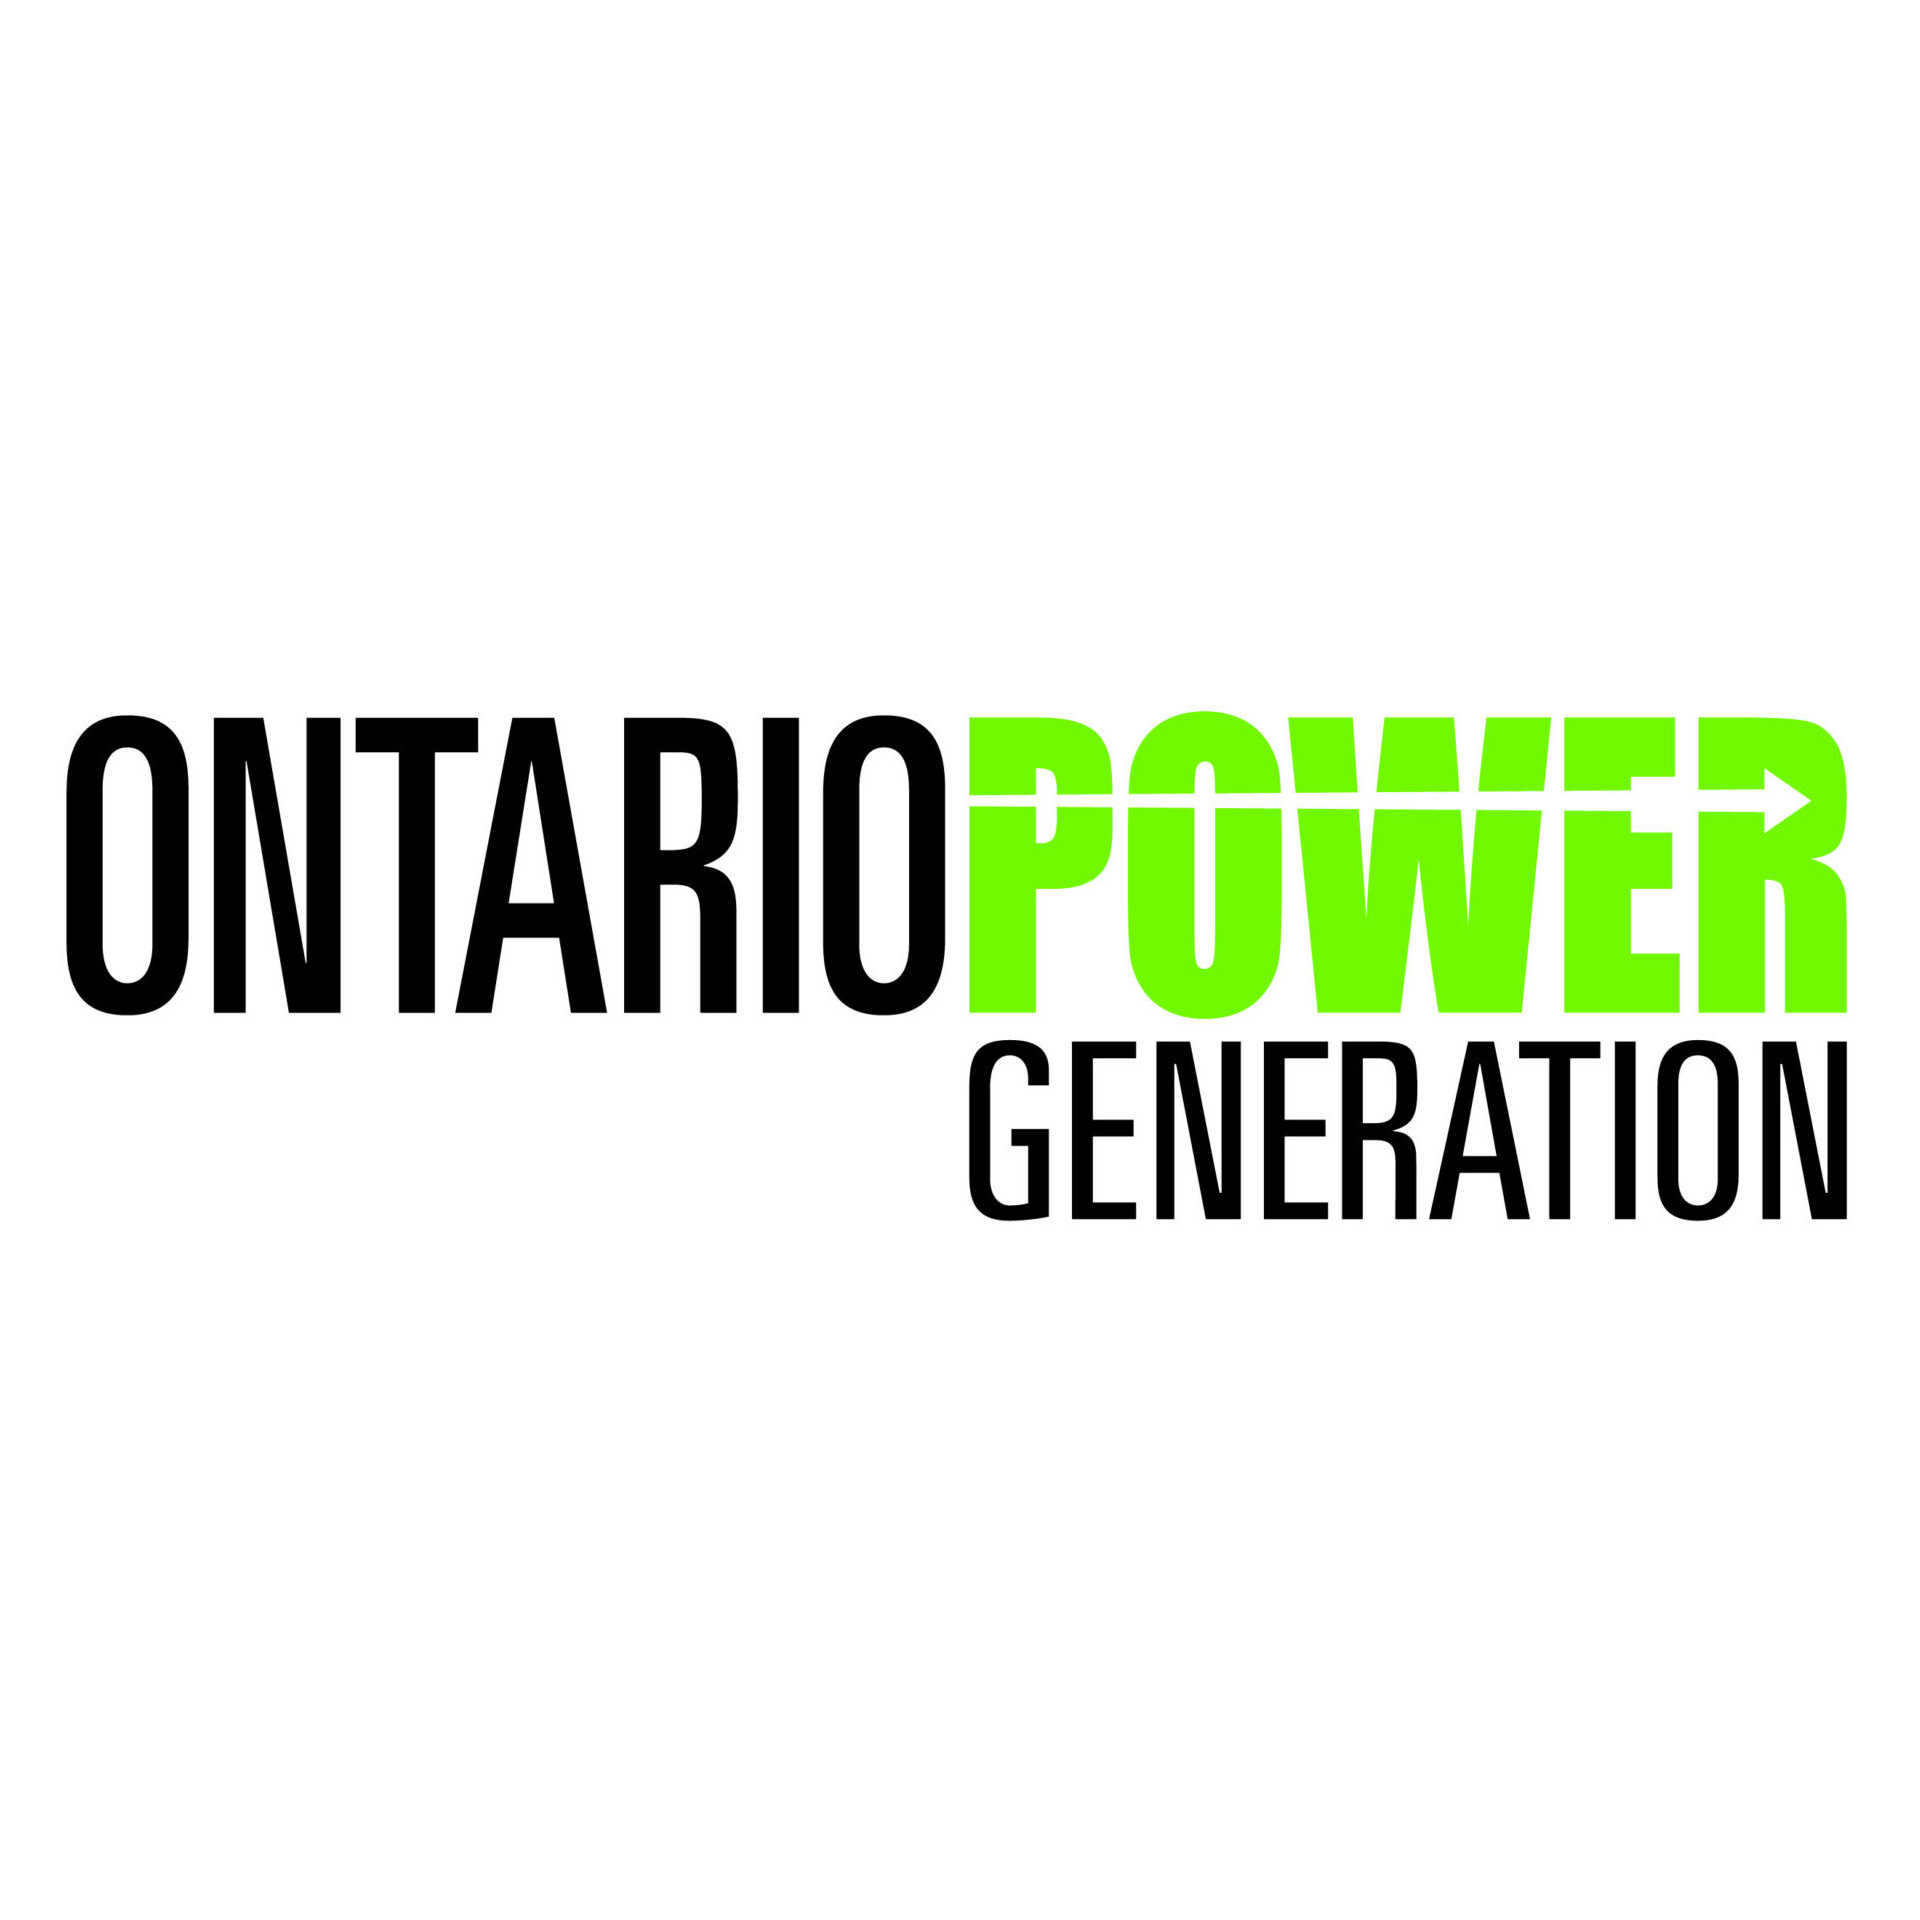 Ontario Power Generation - Protecting Biodiversity